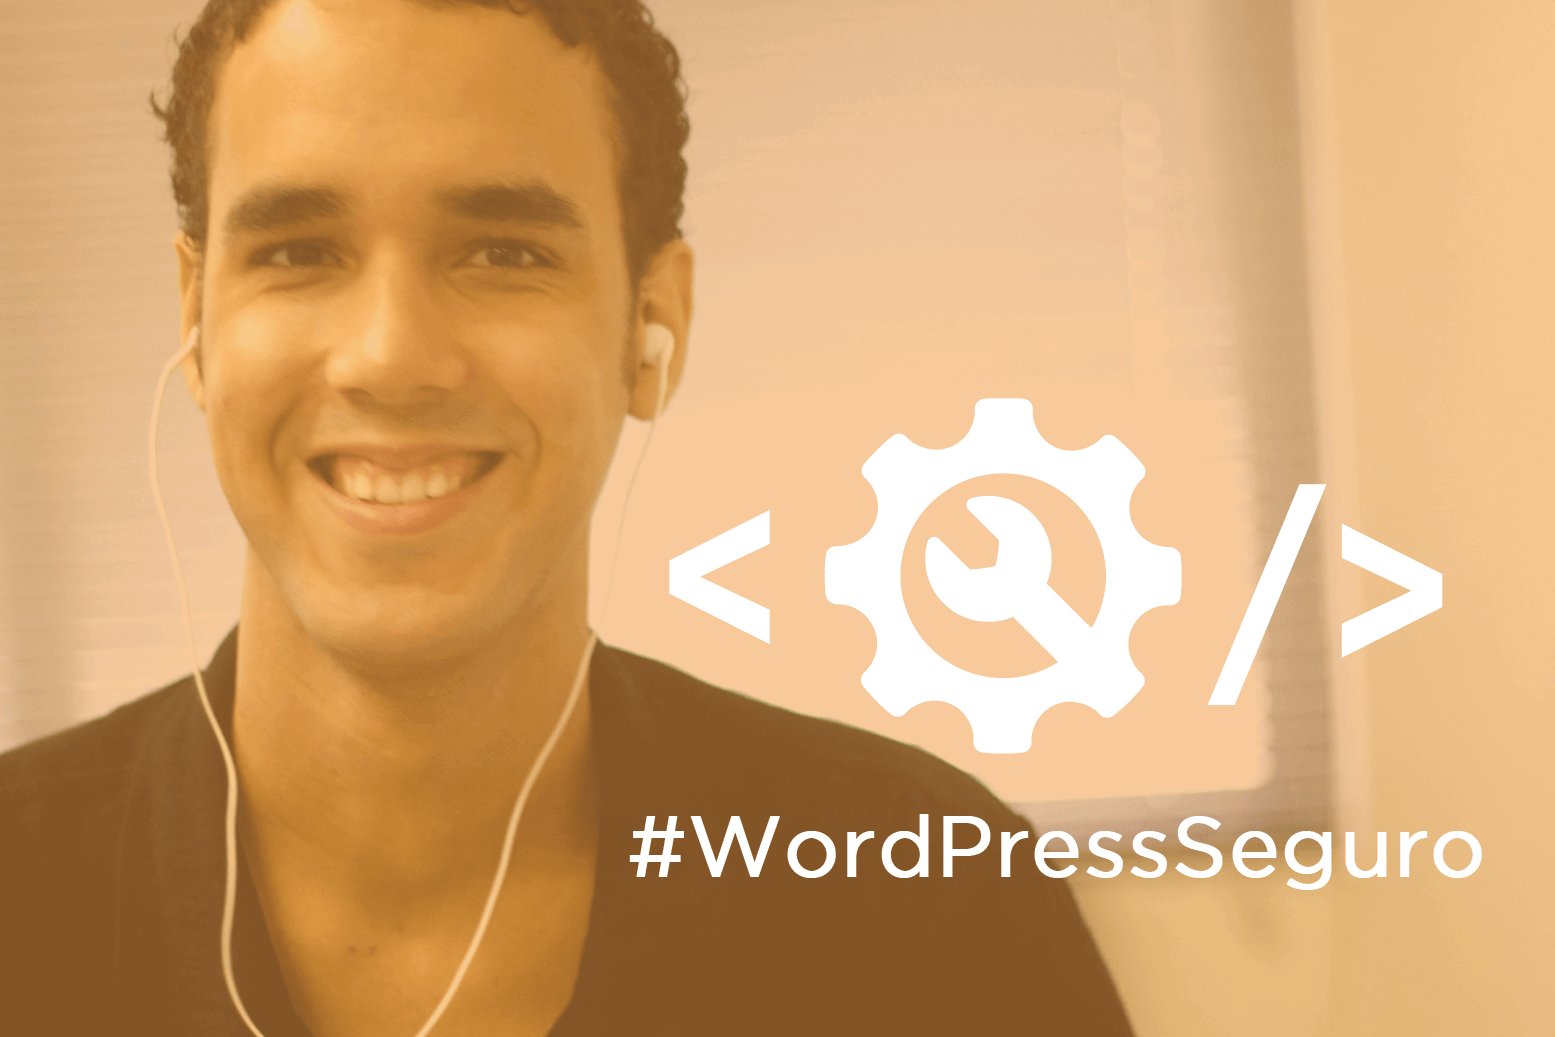 wordpress-seguro-wp-config